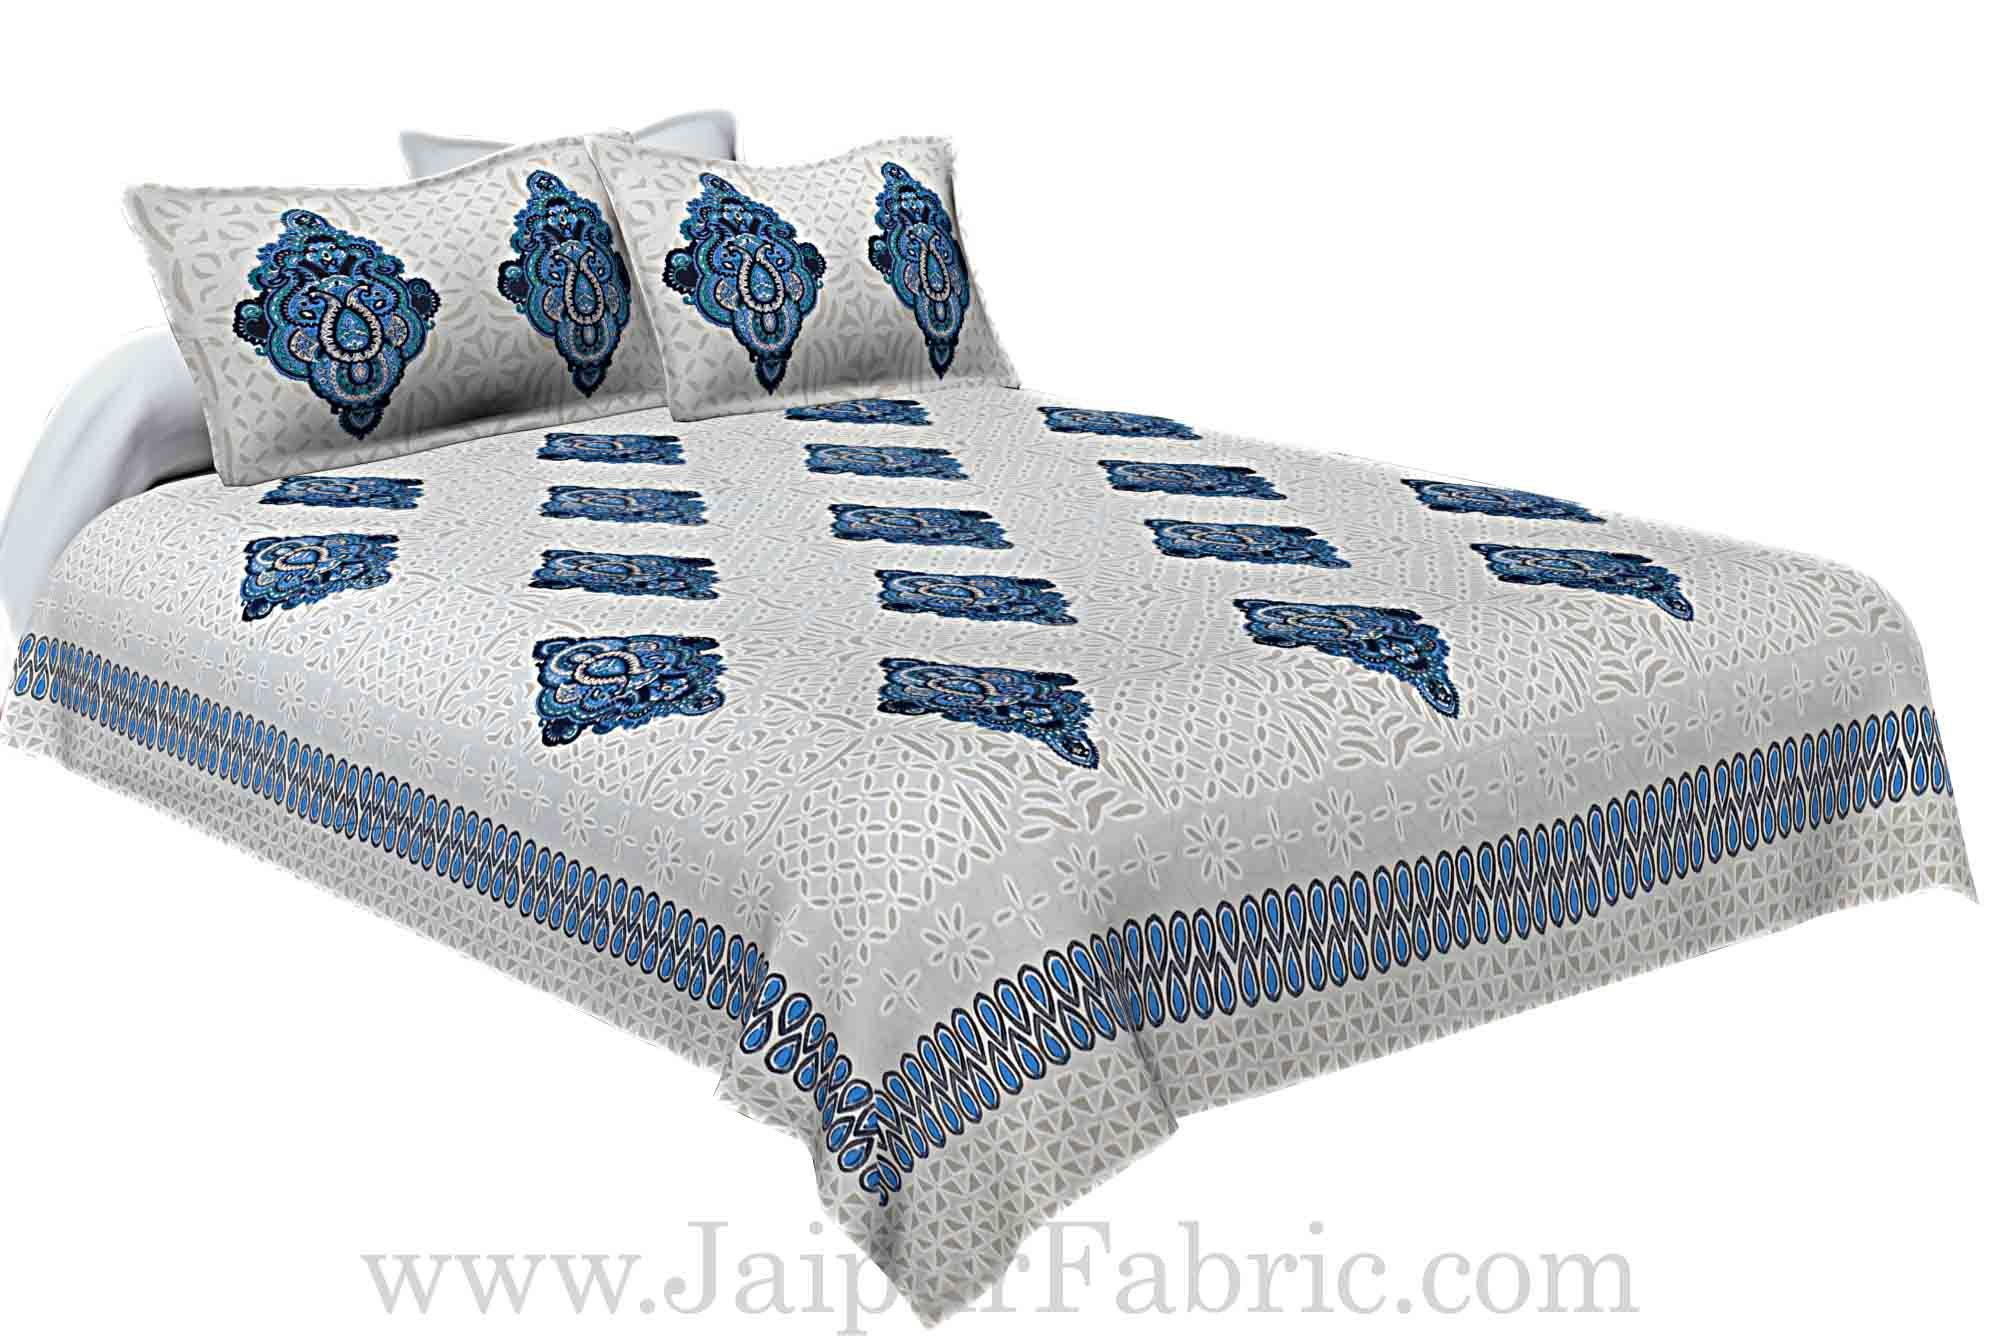 Double Bed Sheet White  Base With boota  Block  Print Super Fine Cotton